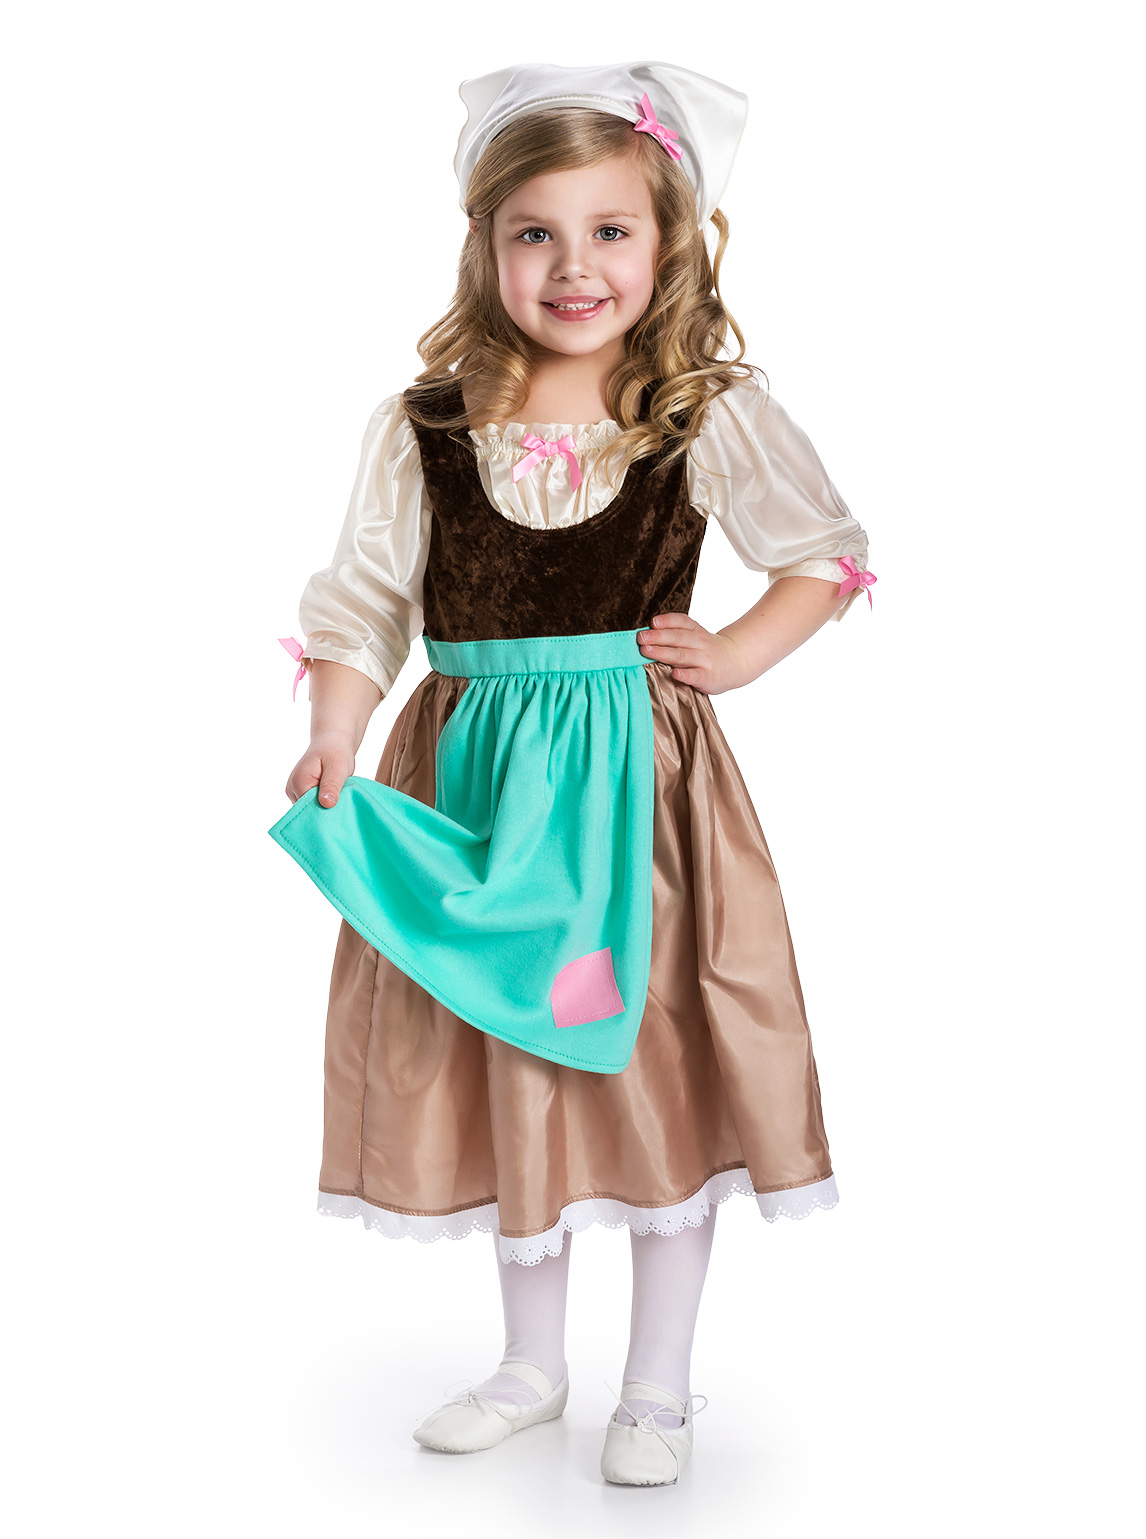 b3ed3dd71a8 Little Adventures CINDERELLA DAY DRESS- Girls Dress up Dress Size XL - Age  7-9  24.99 each